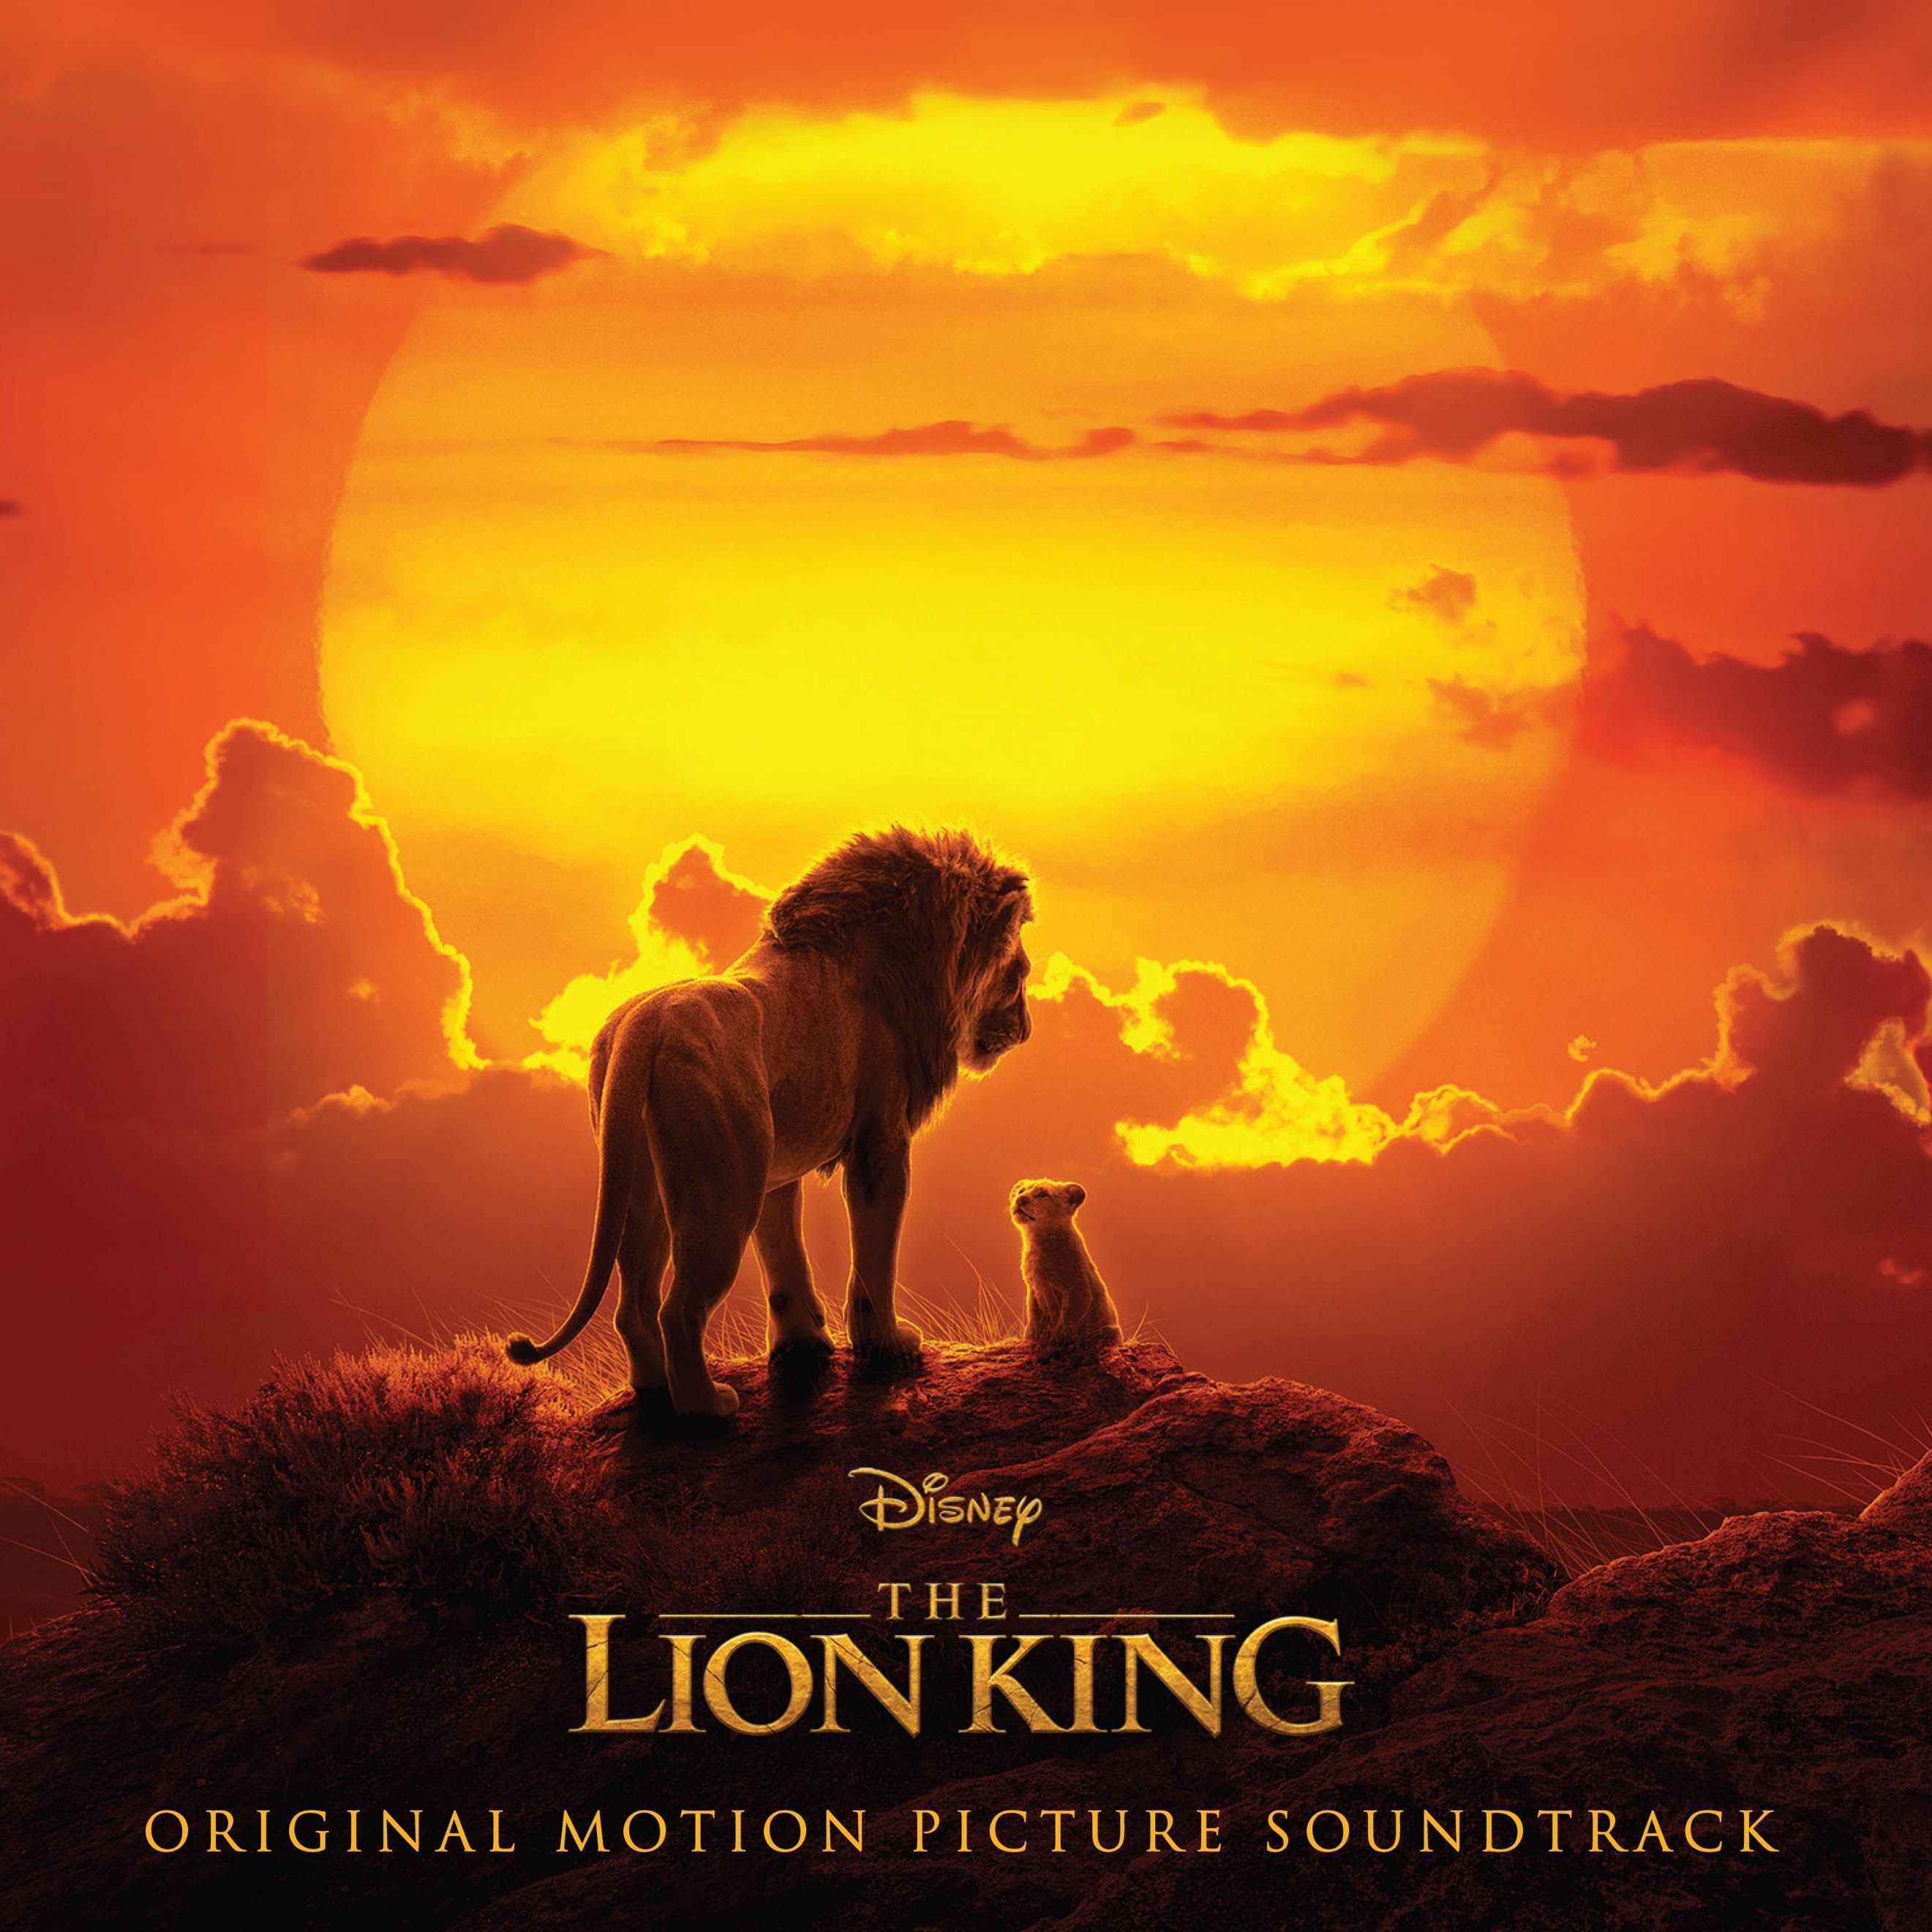 the lion king soundtrack details revealed  includes new